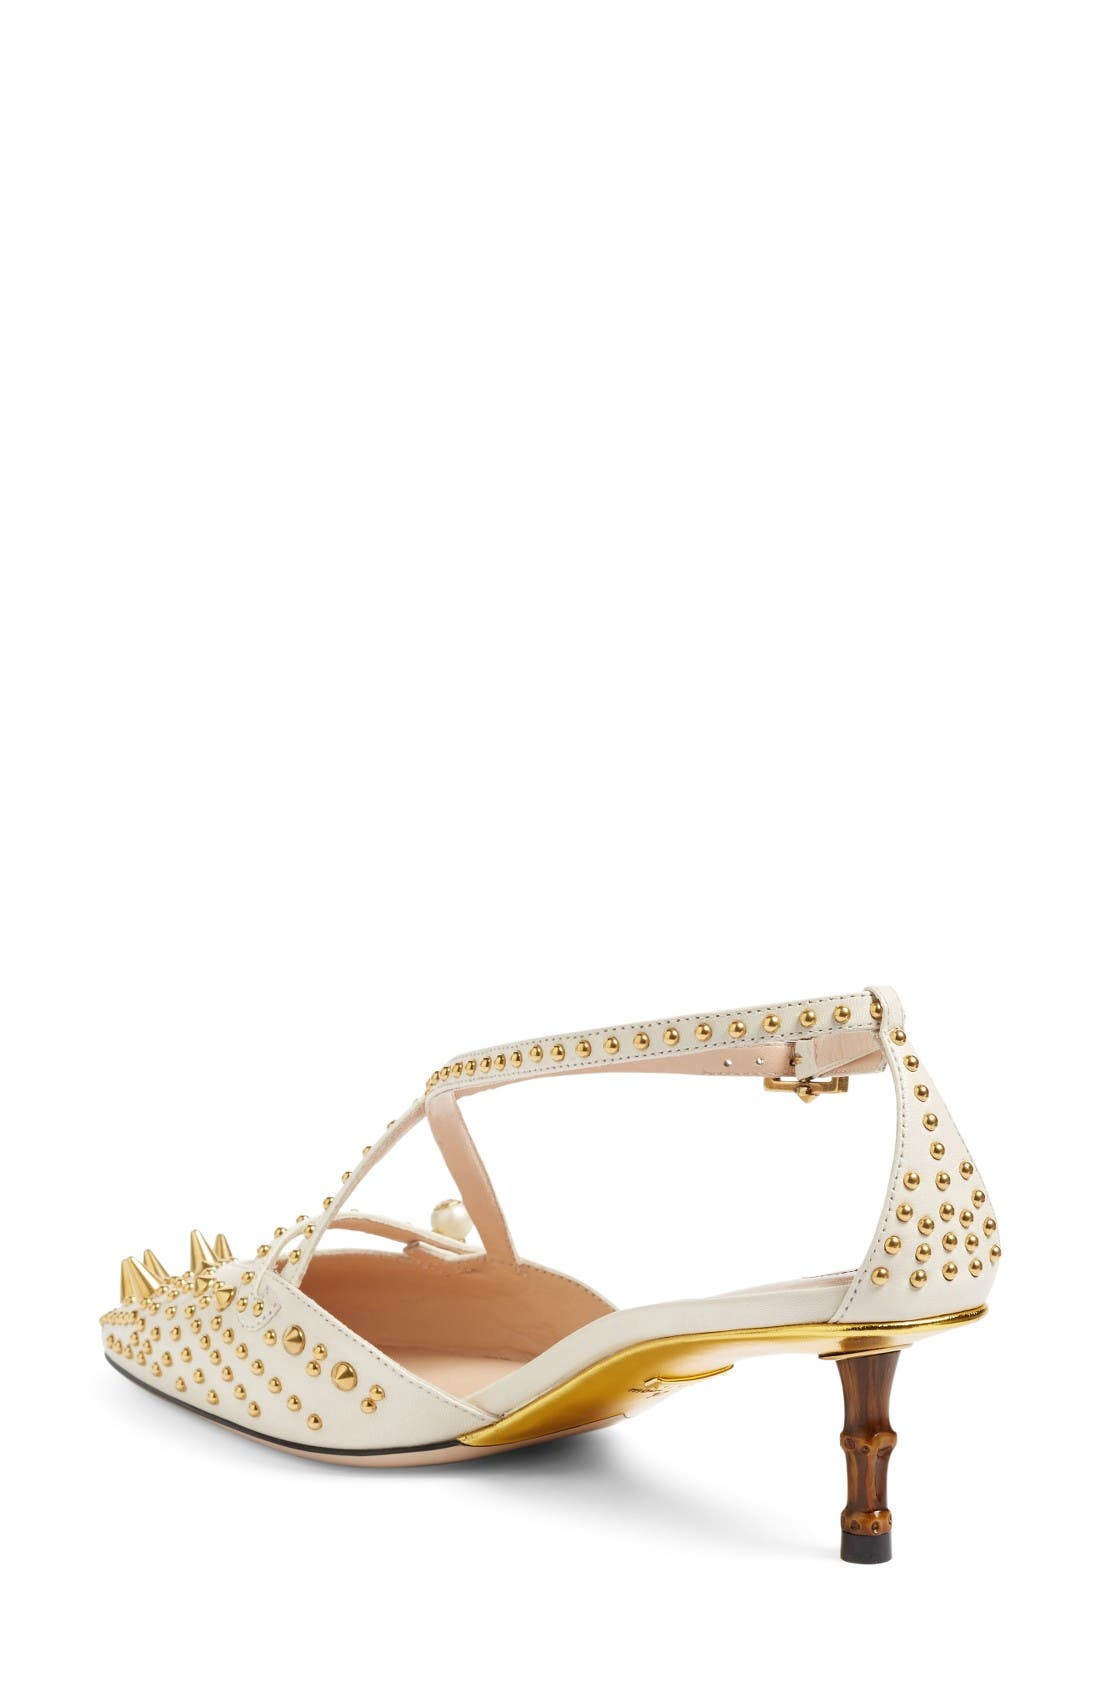 Unia Studded Pump,                             Alternate thumbnail 2, color,                             White Leather